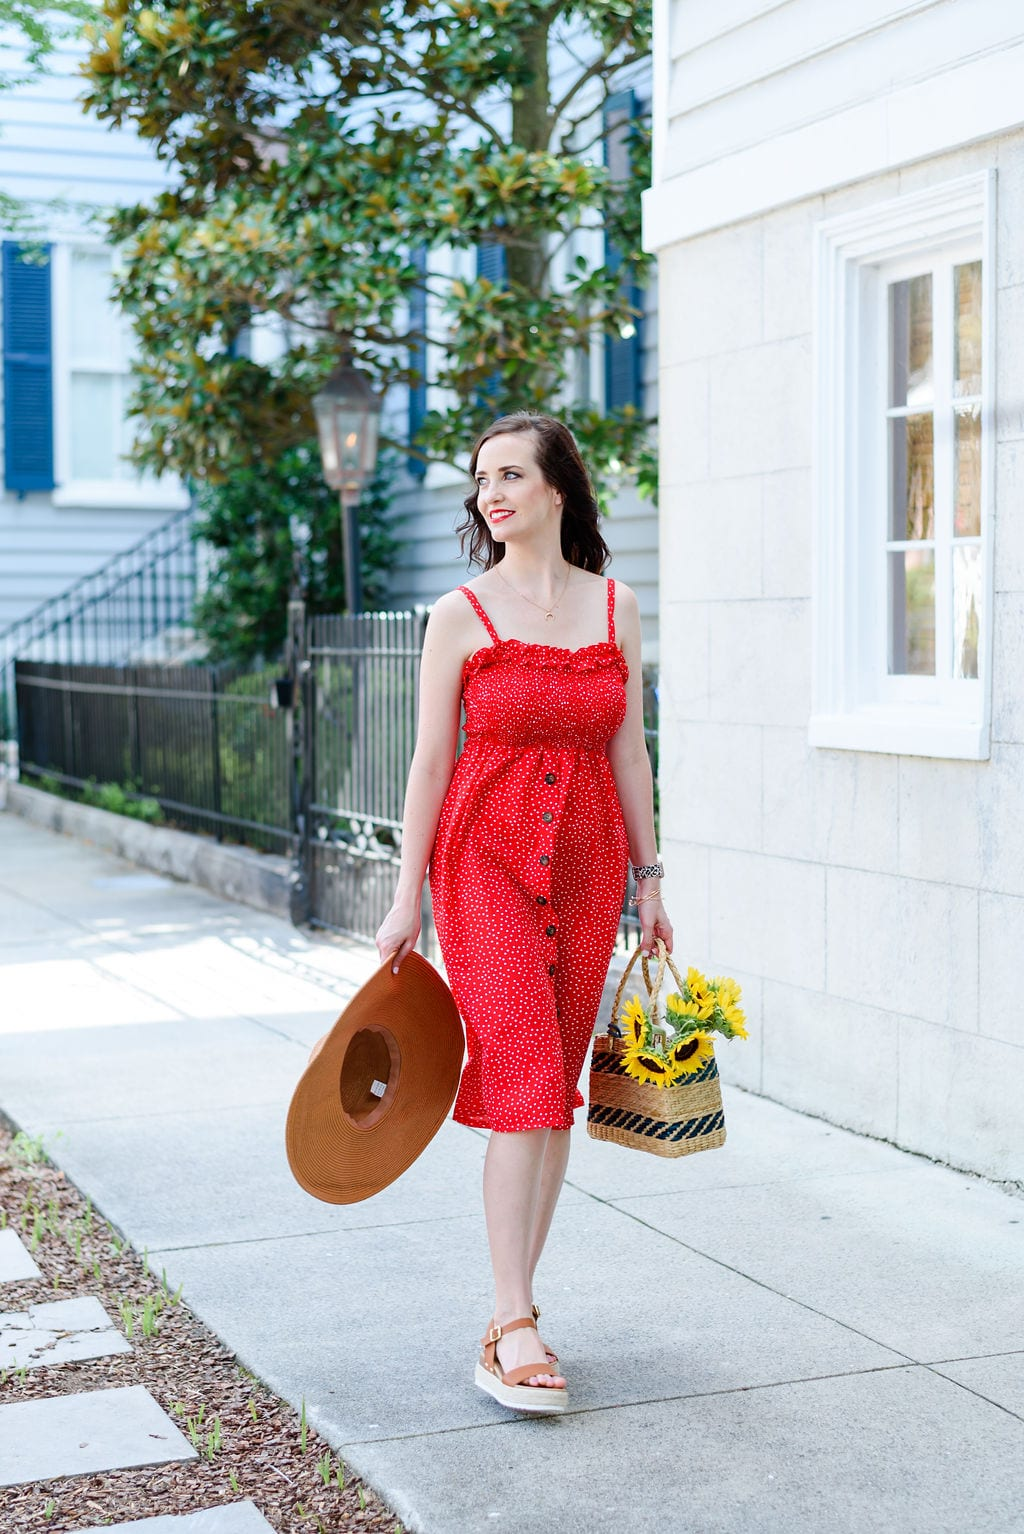 Ashley T walking downtown Charleston with a sun hat and sunflowers